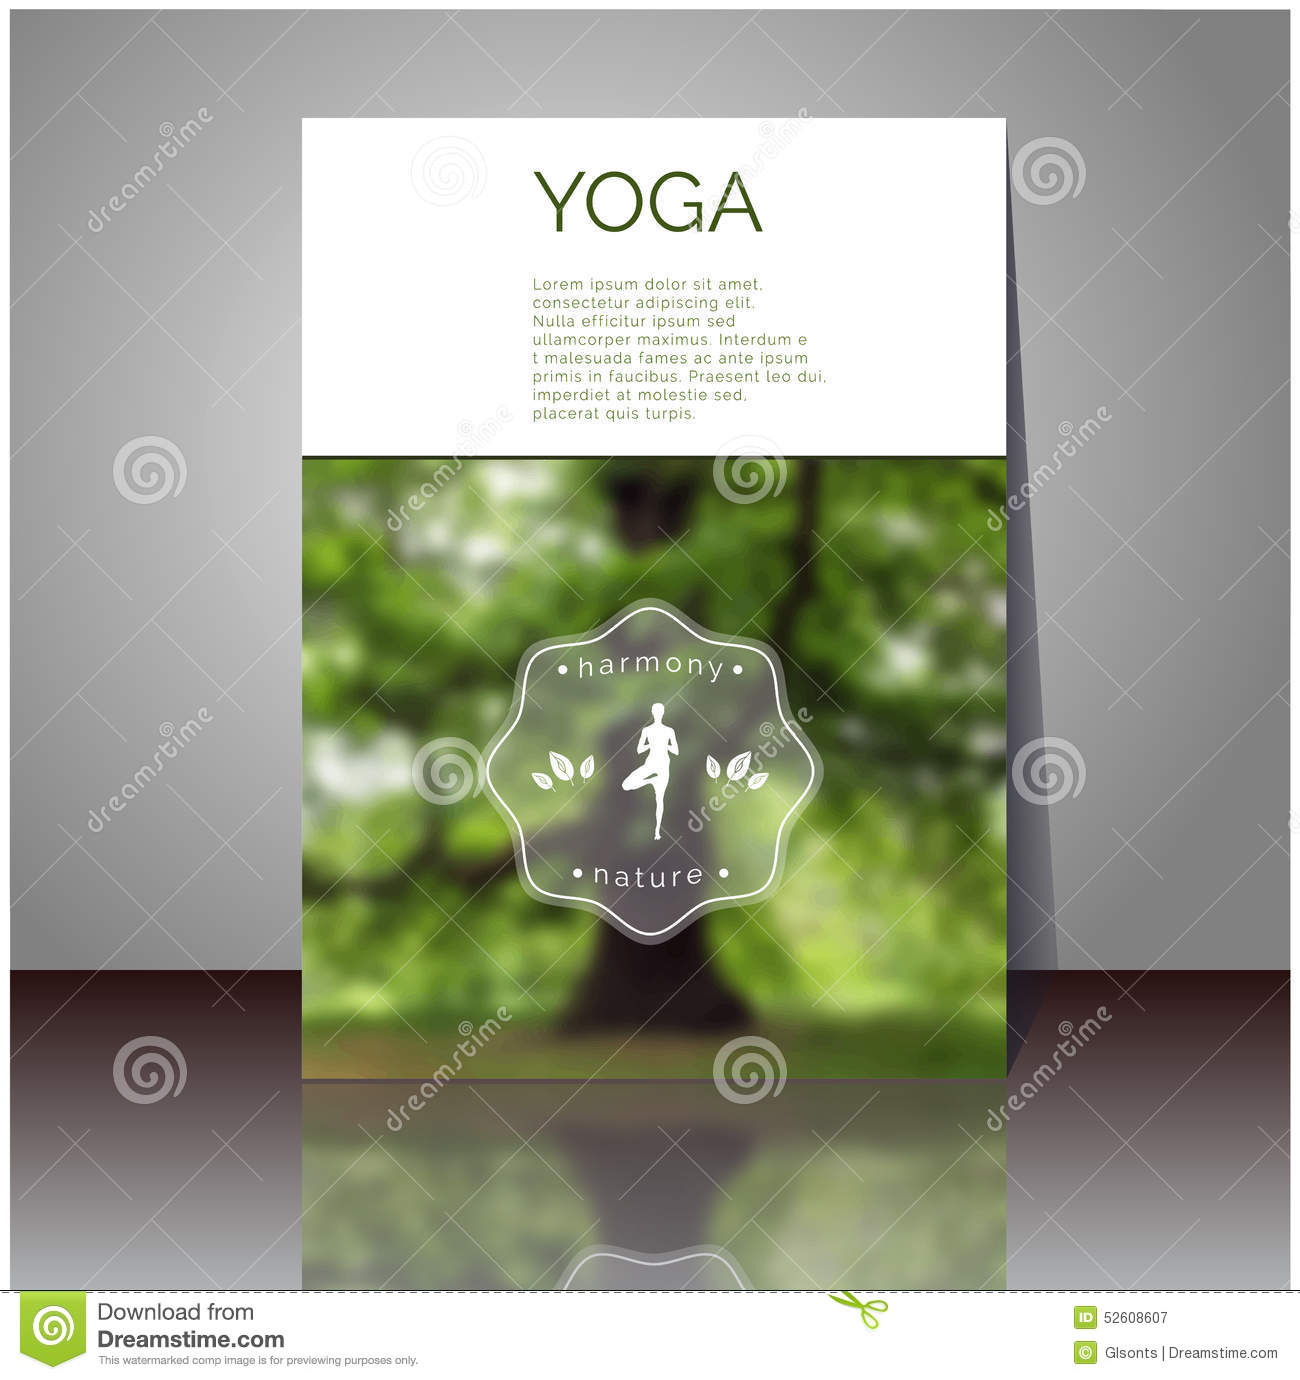 Yoga Vector Poster Cover Design With Blurred Photo Your Text